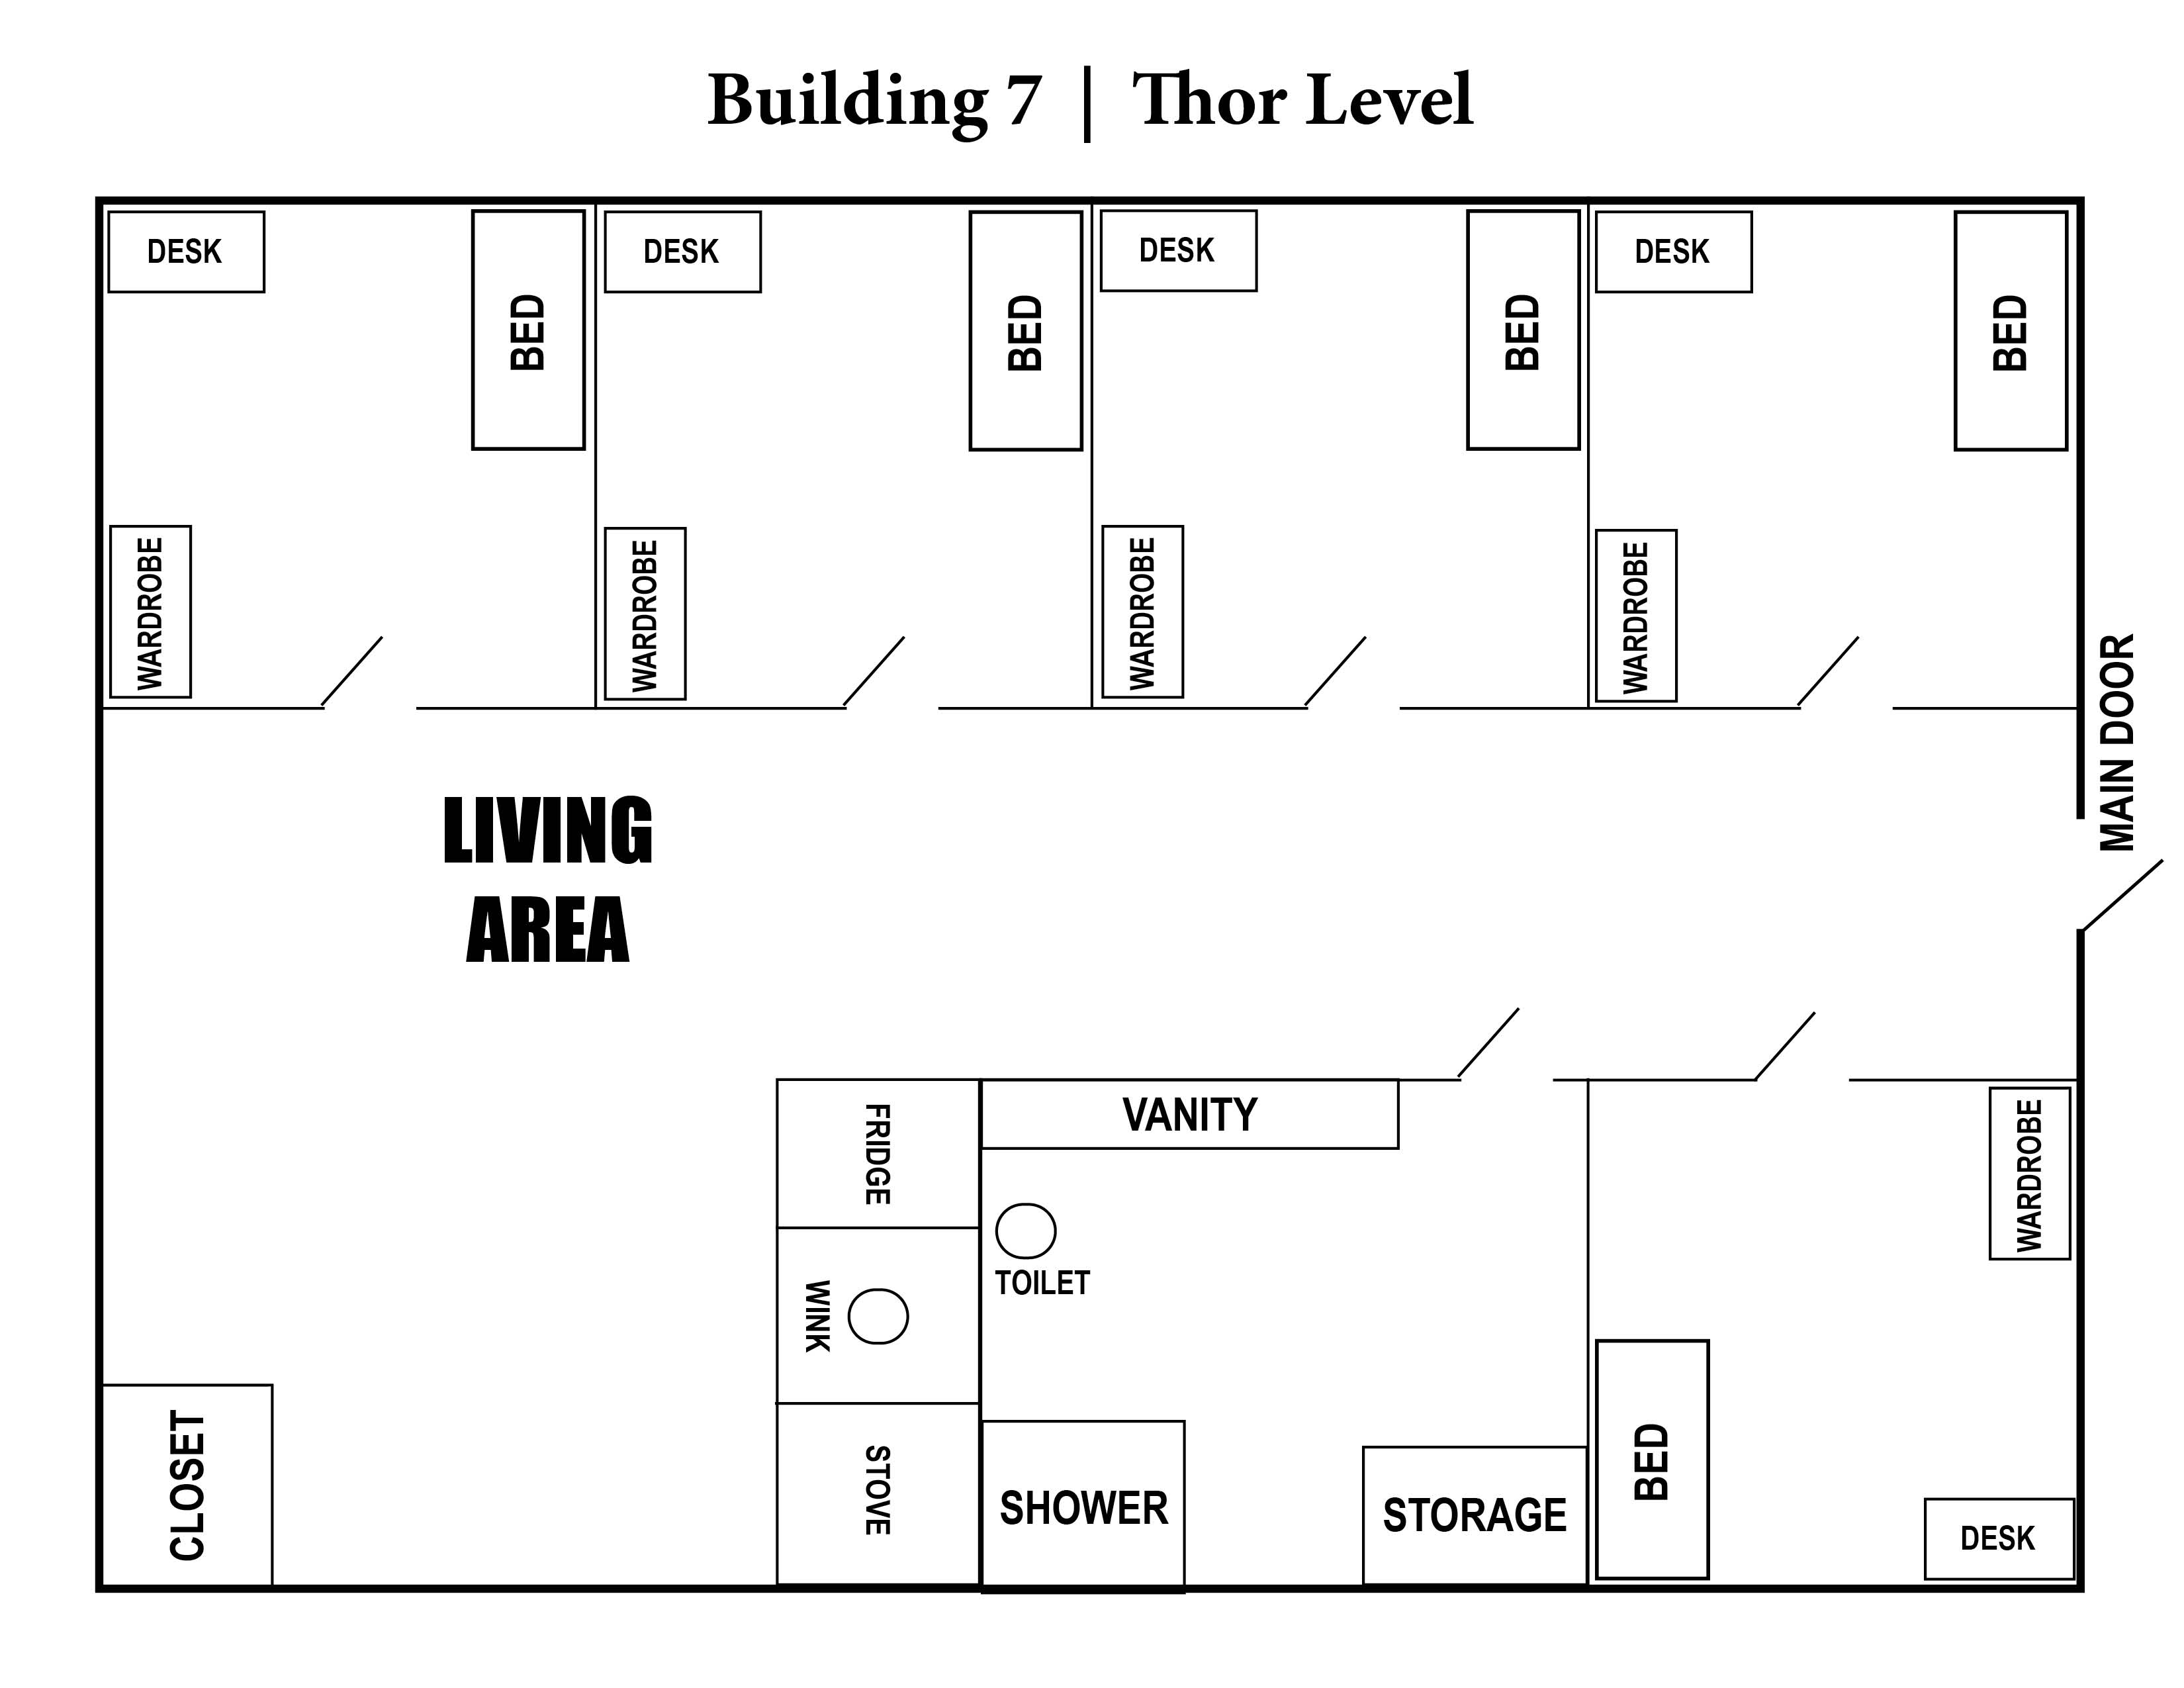 A photo of the layout of Building 7.